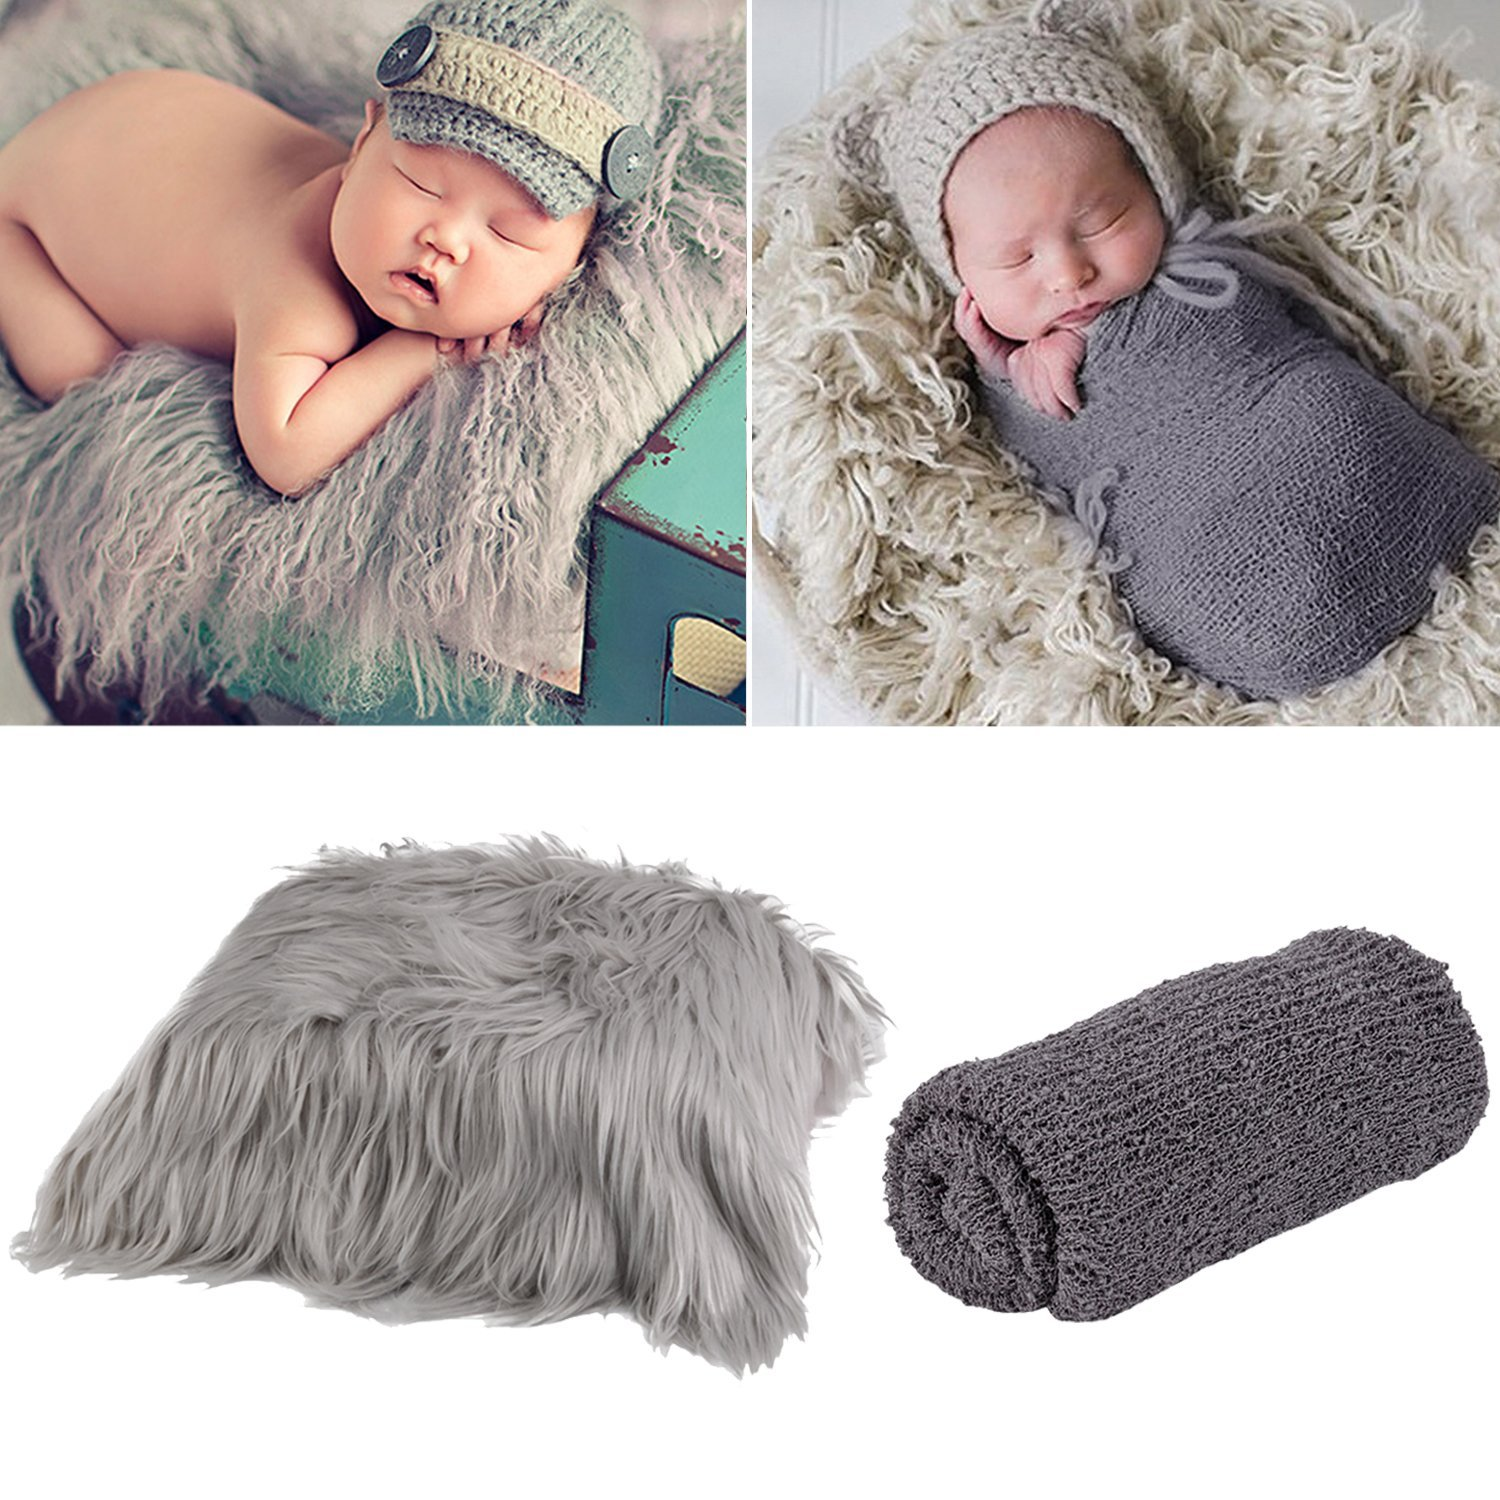 Aniwon 2Pcs Baby Photo Props Long Ripple Wraps Blanket Newborn Photography Mat